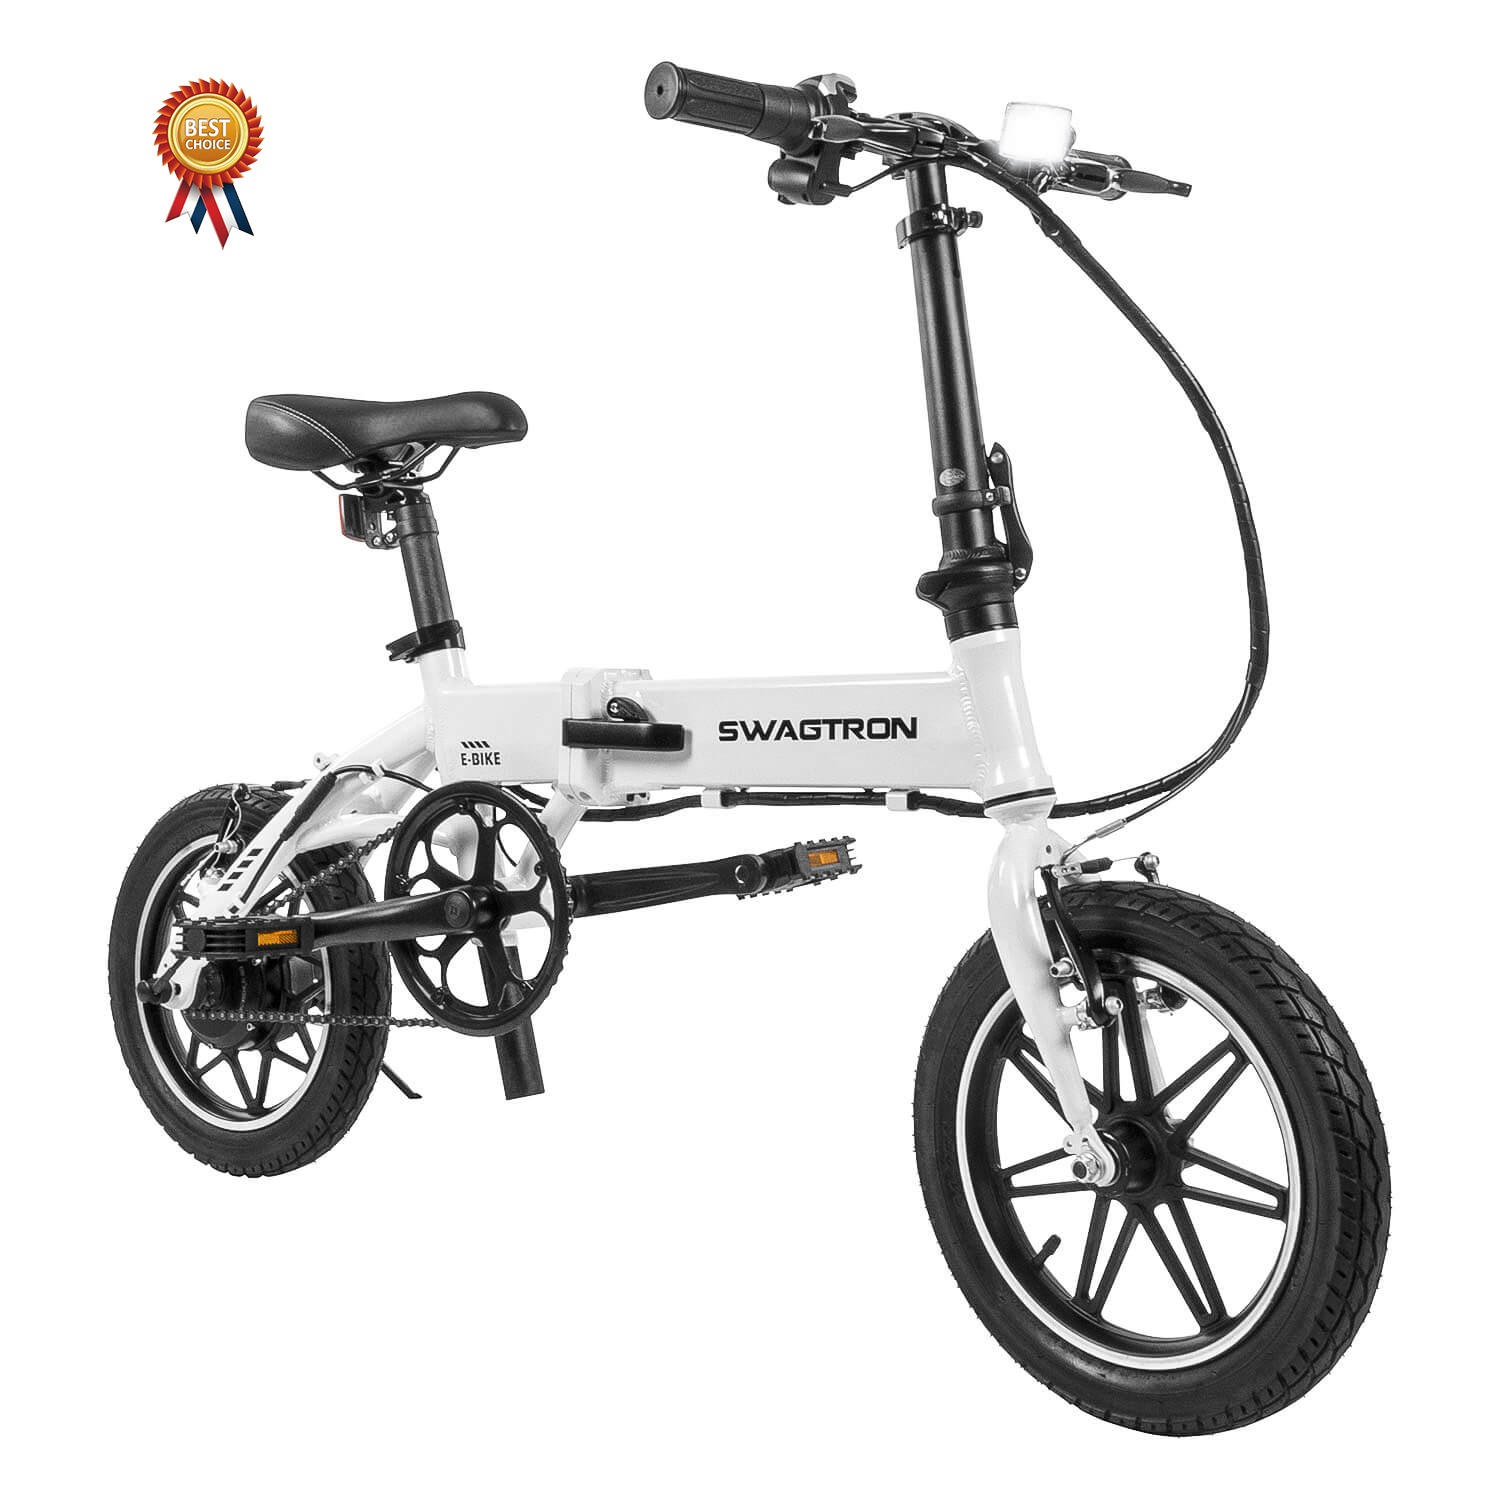 SWAGTRON EB5 Pro City & Campus Folding eBike, Pedal-To-Go